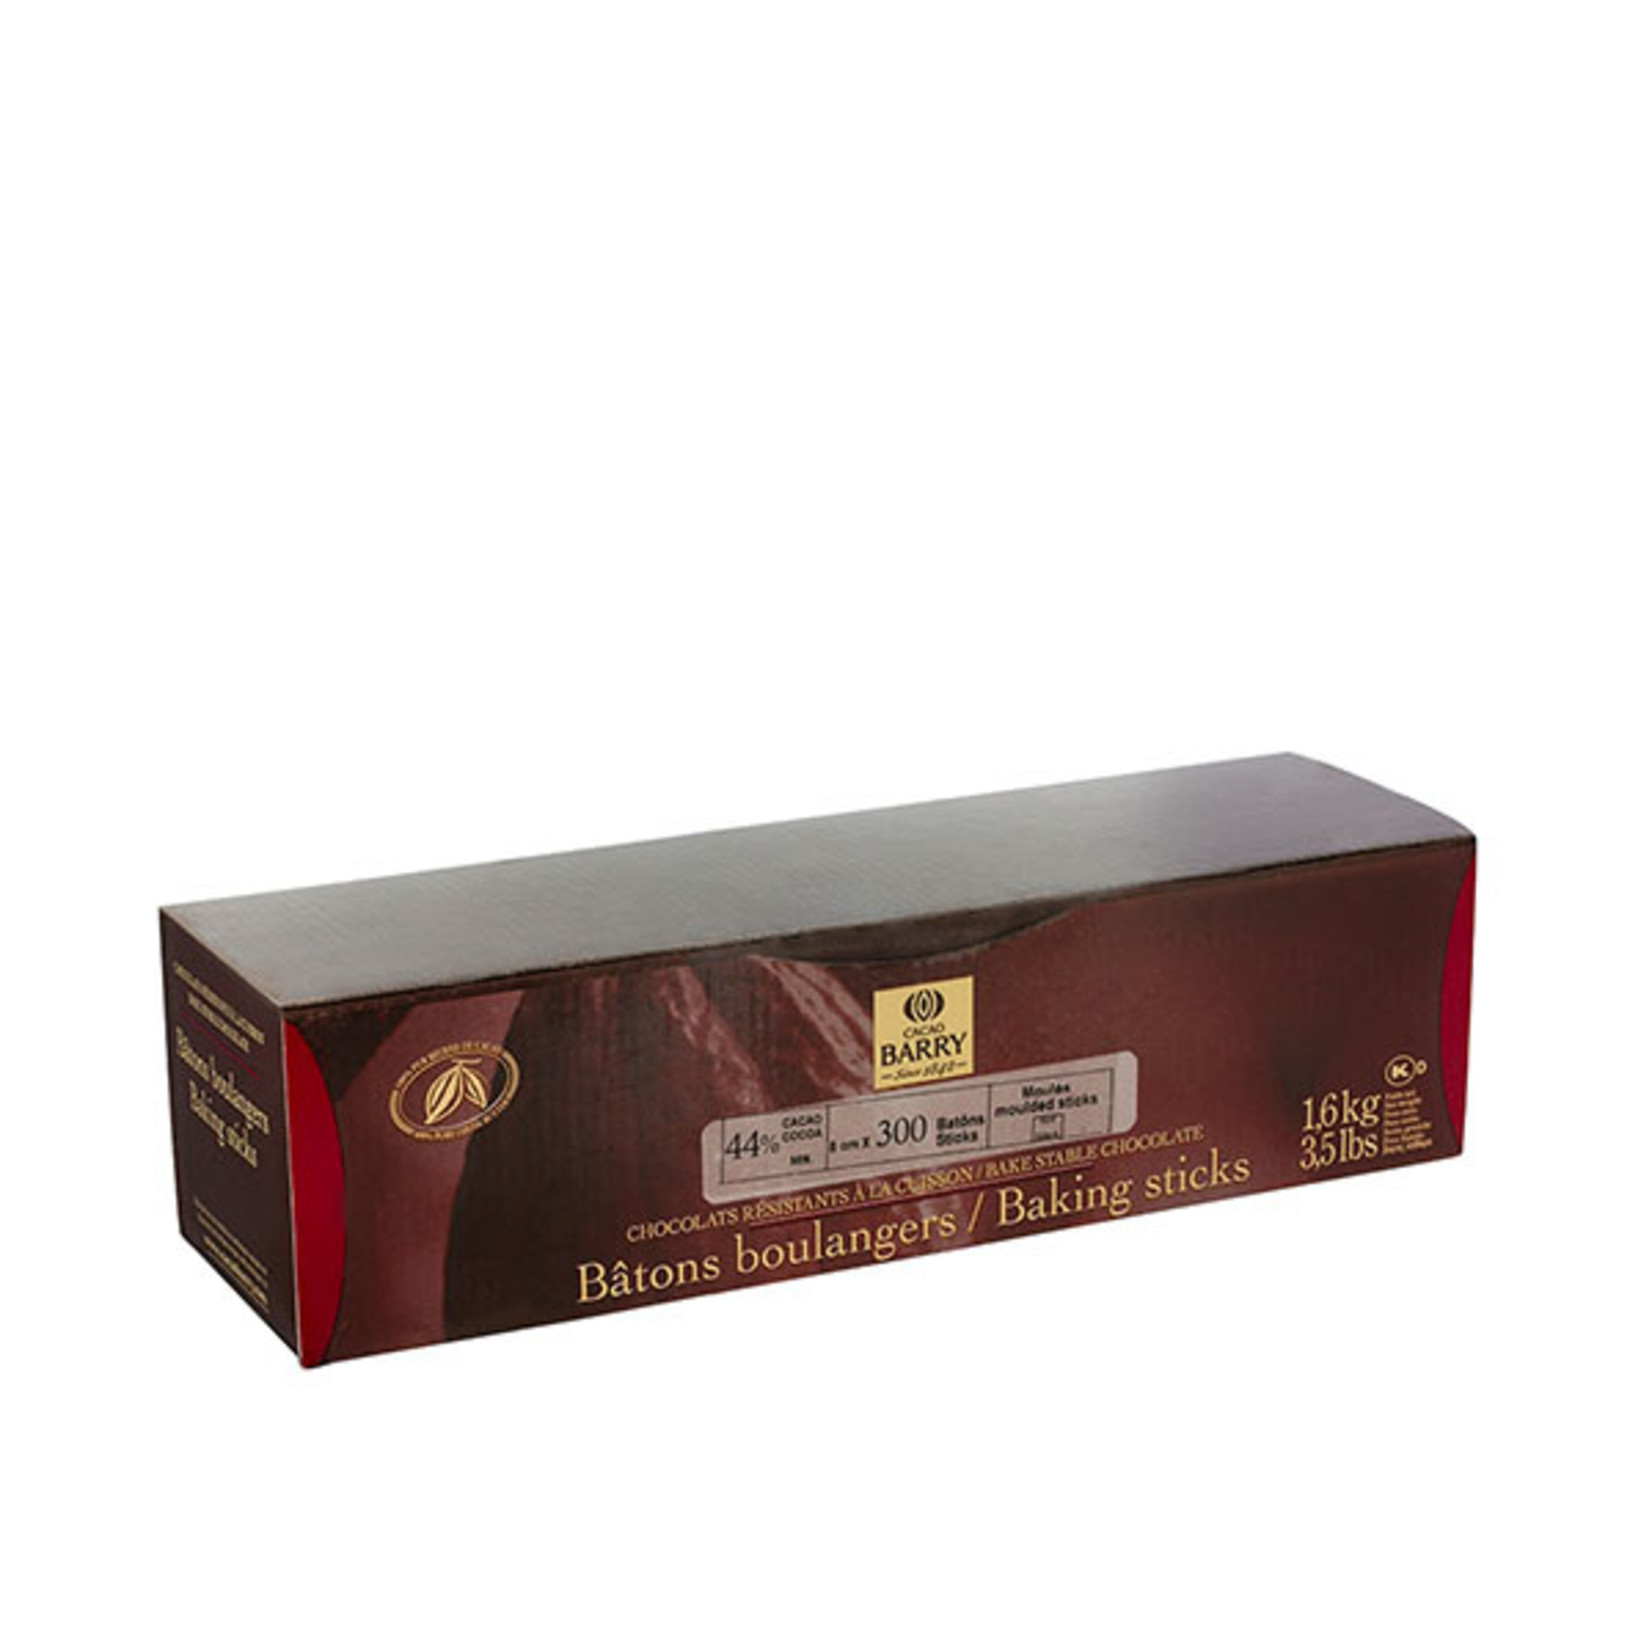 Cacao Barry Cacao Barry - Chocolate Batons 44% (300ct), CHD-BB-308BY-357